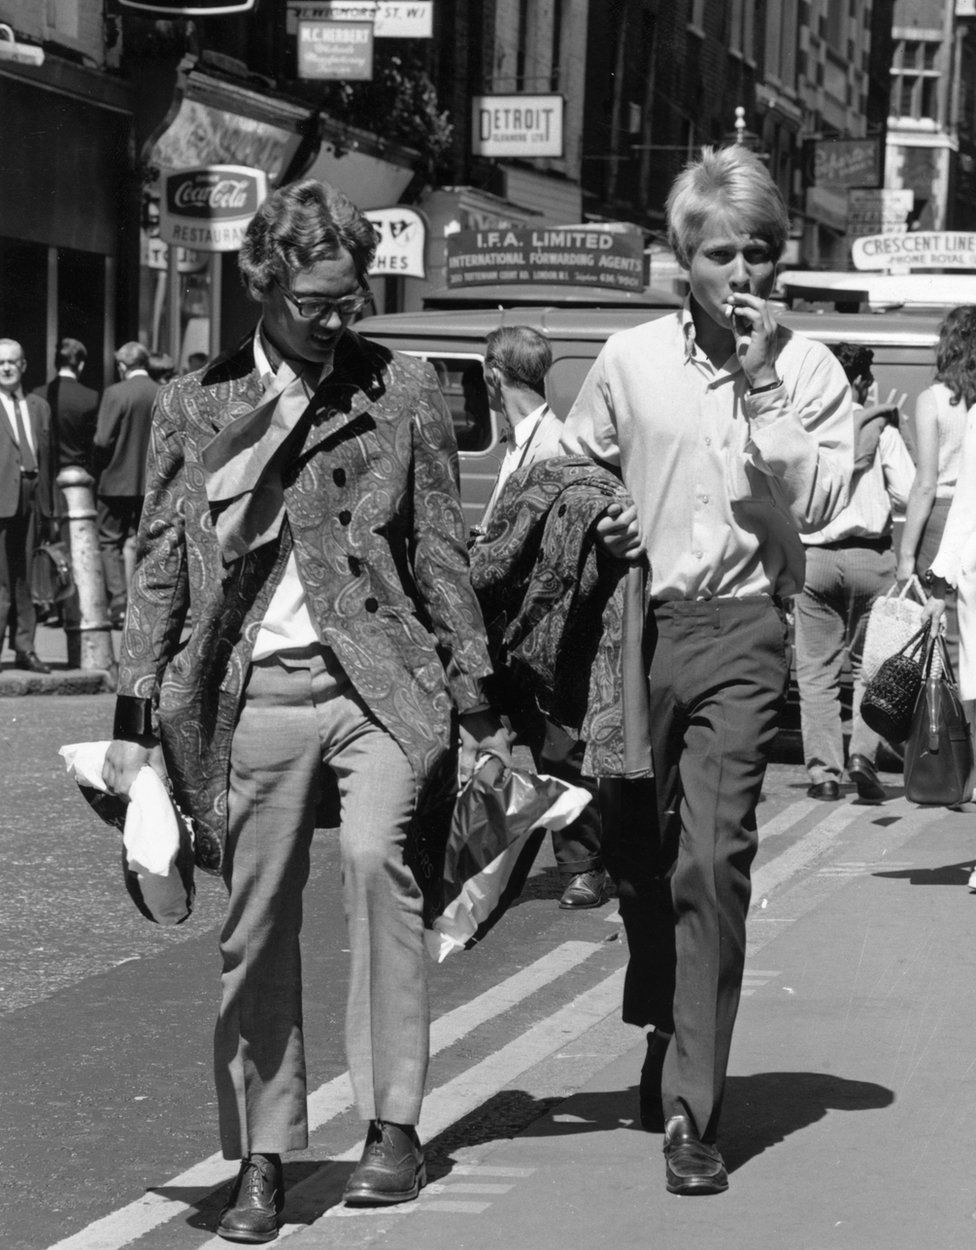 Two young men walk down London's Carnaby Street in 1967